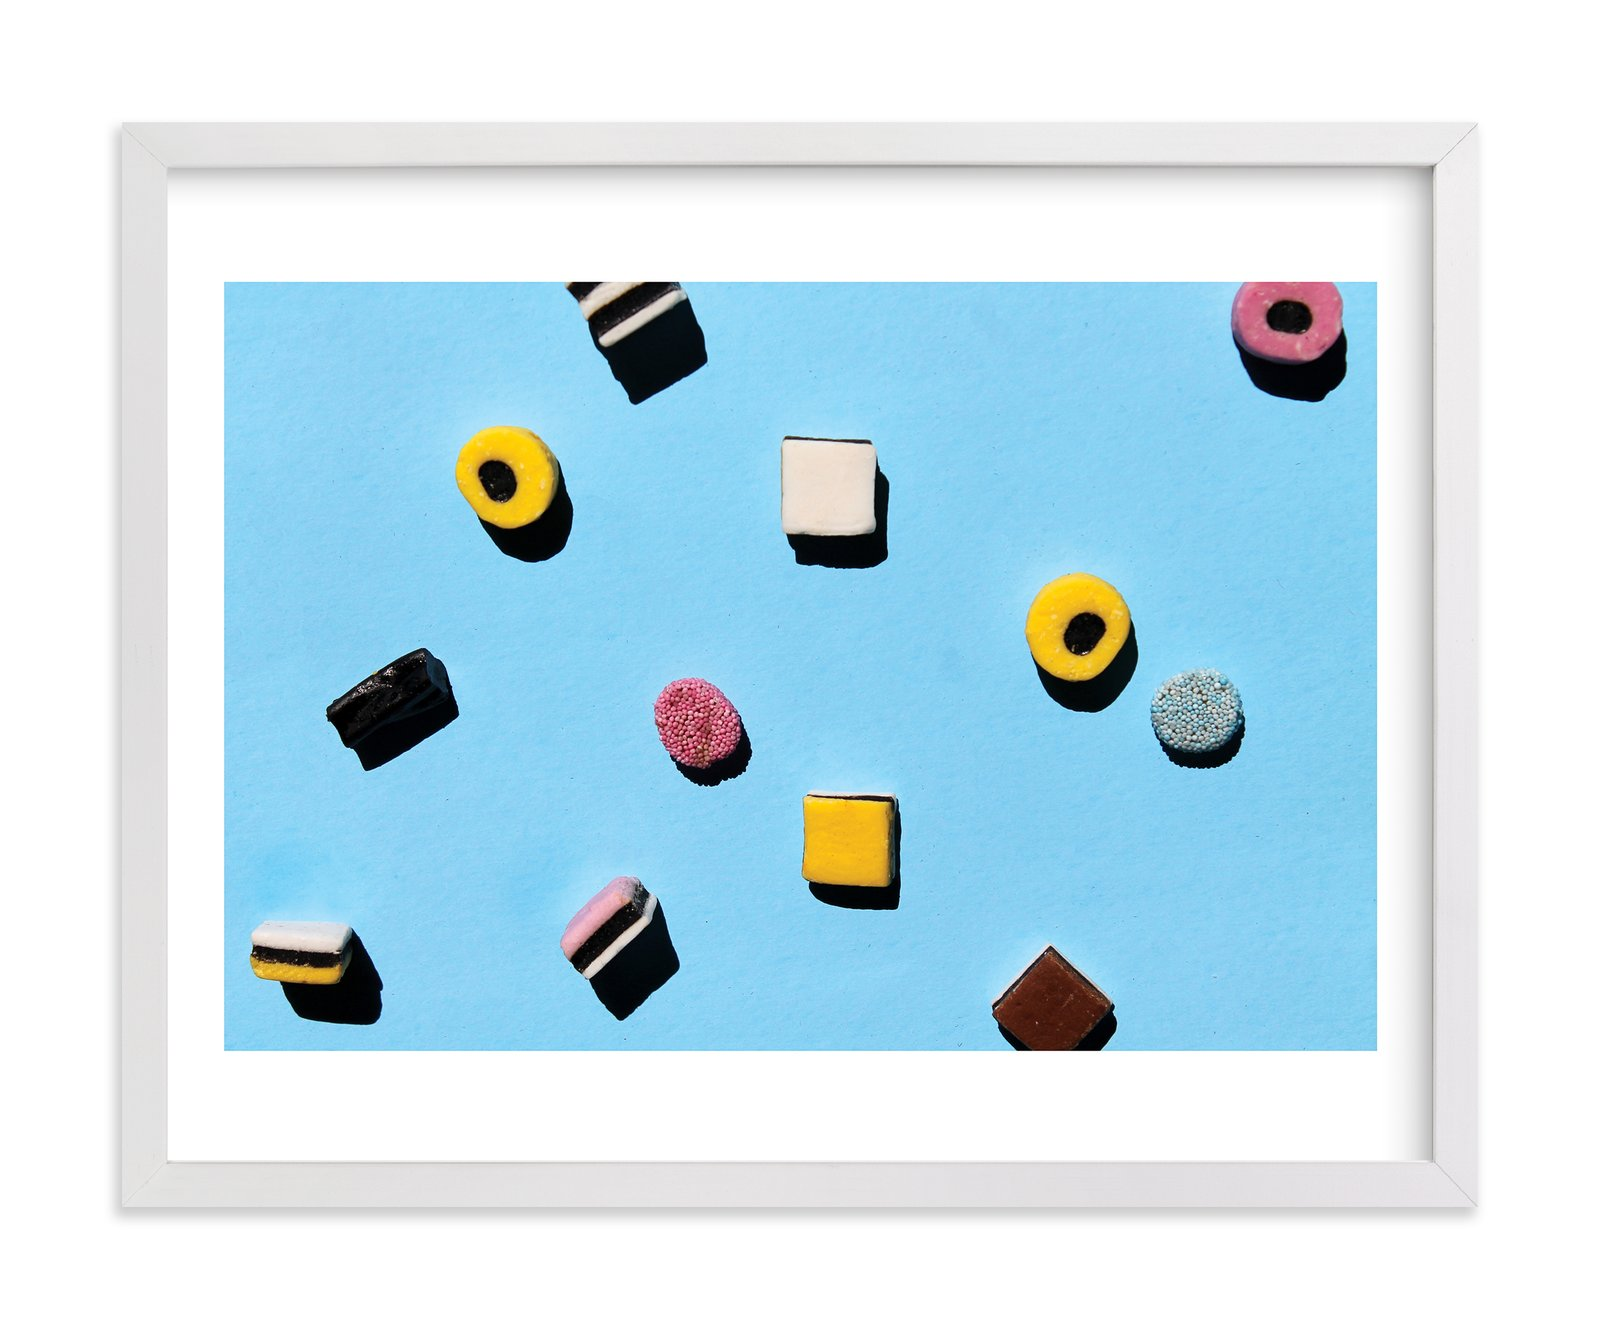 Photo 5 of 13 in 12 Playful Pieces of Art to Instantly Liven Up Your Kid's Room